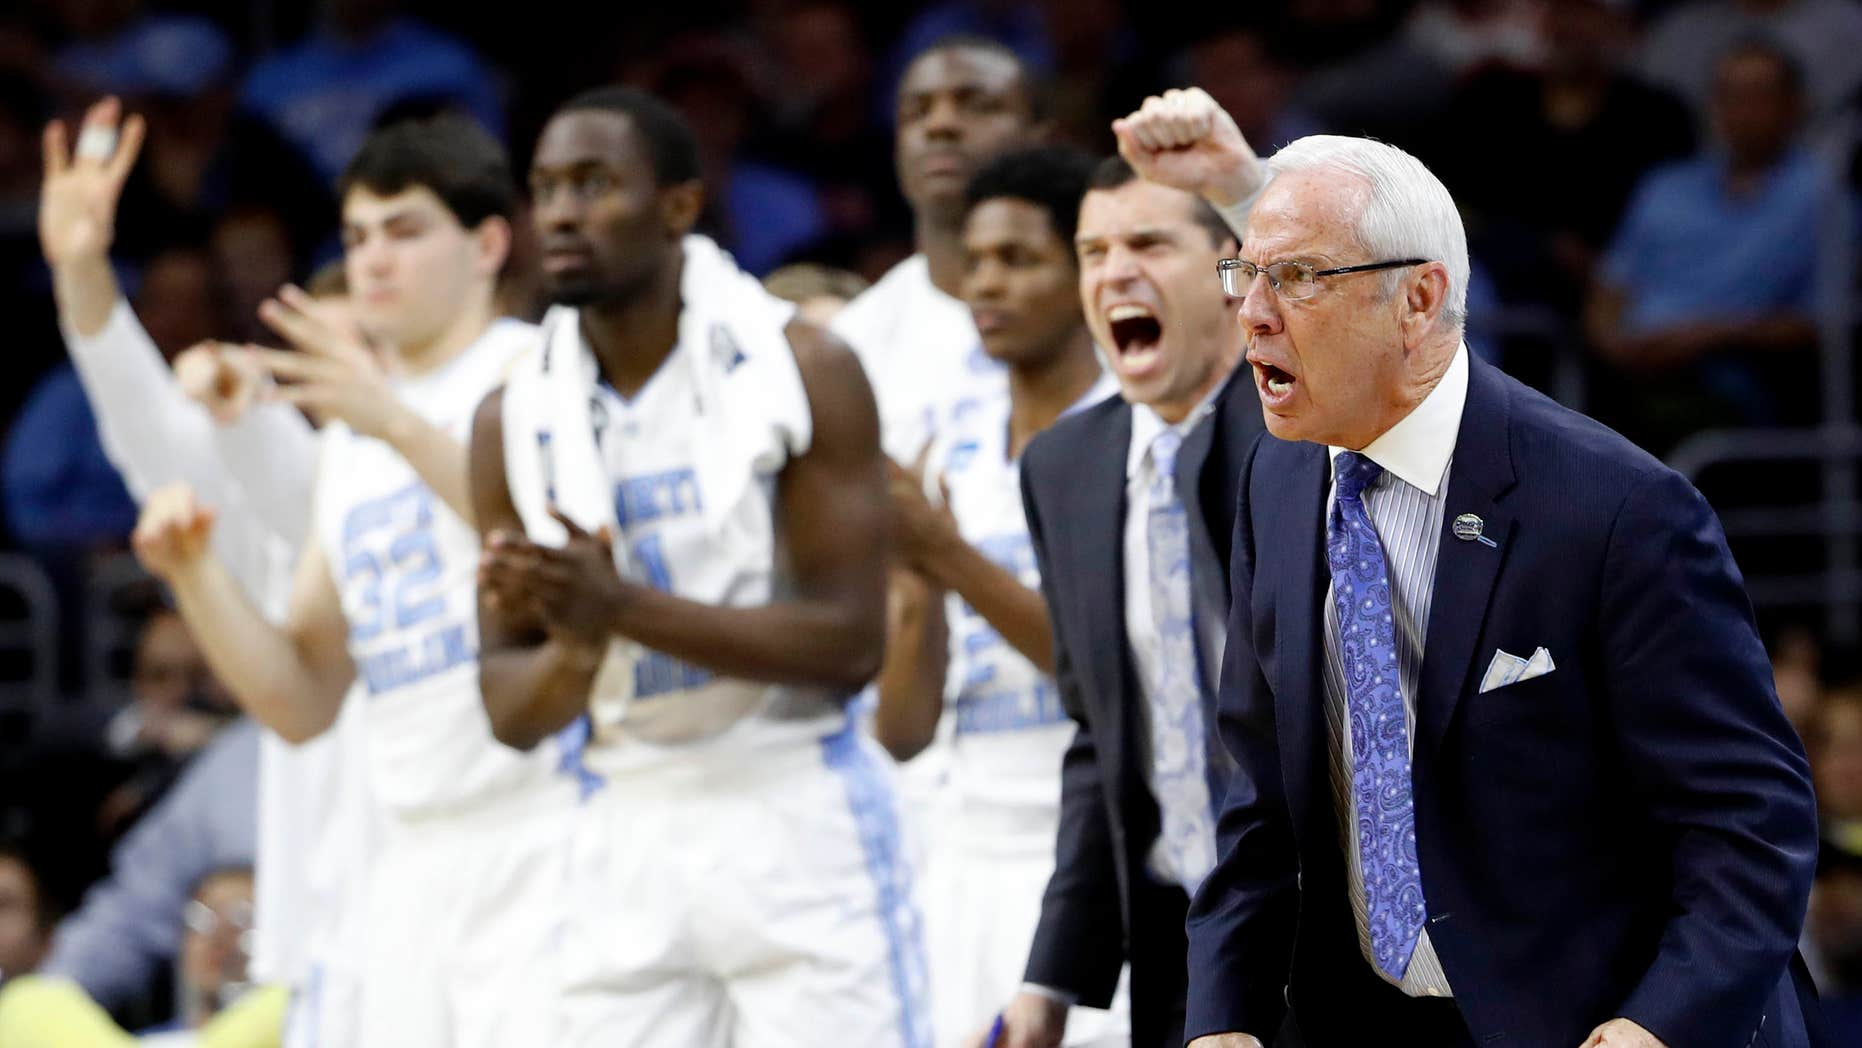 North Carolina coach Roy Williams and players react during the second half of the team's college basketball game against Indiana in the regional semifinals of the men's NCAA Tournament, early Saturday, March 26, 2016, in Philadelphia.